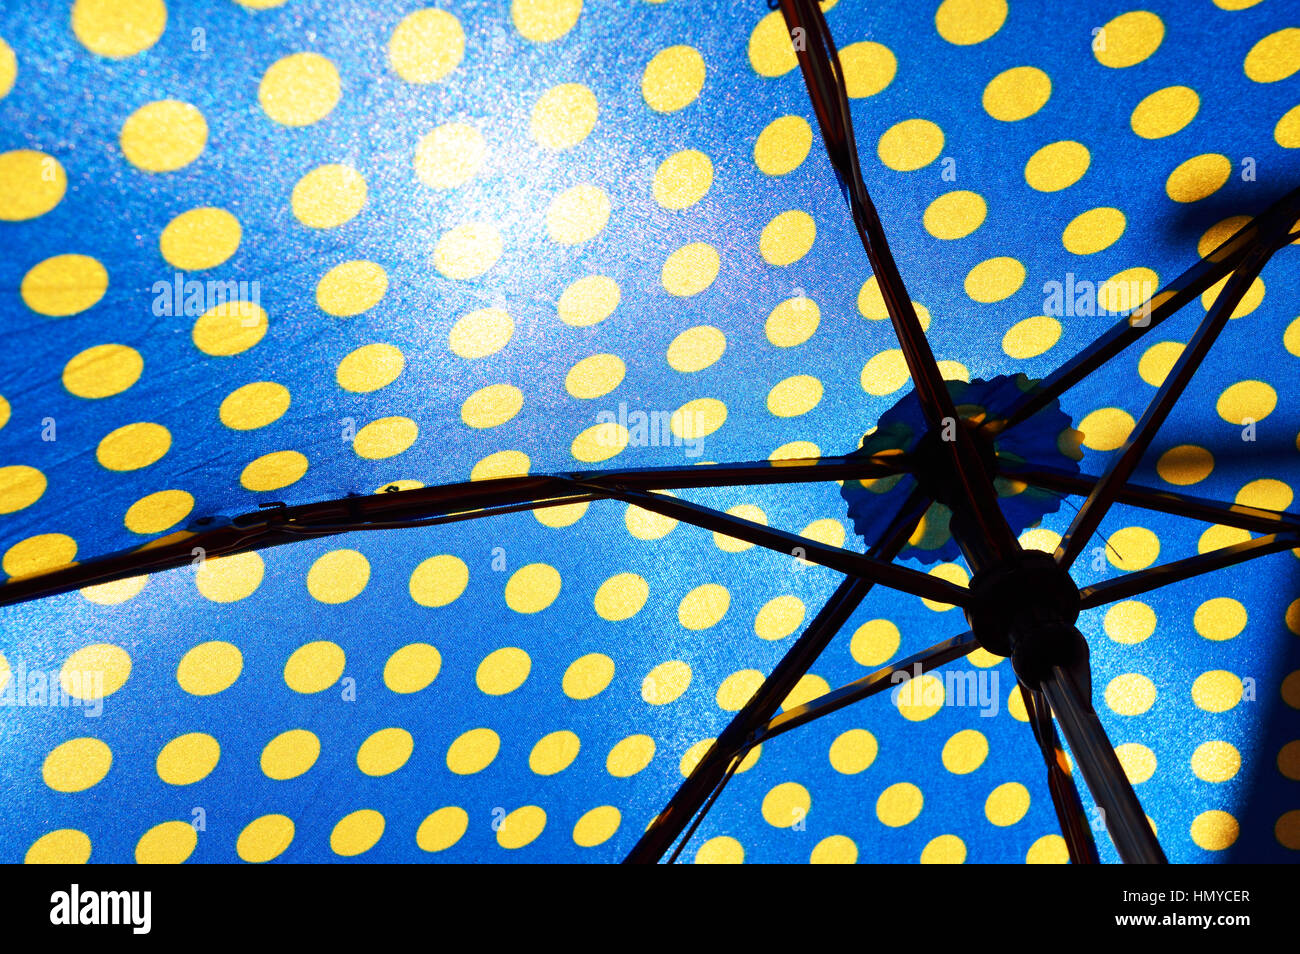 Underside of a blue and yellow umbrella - Stock Image